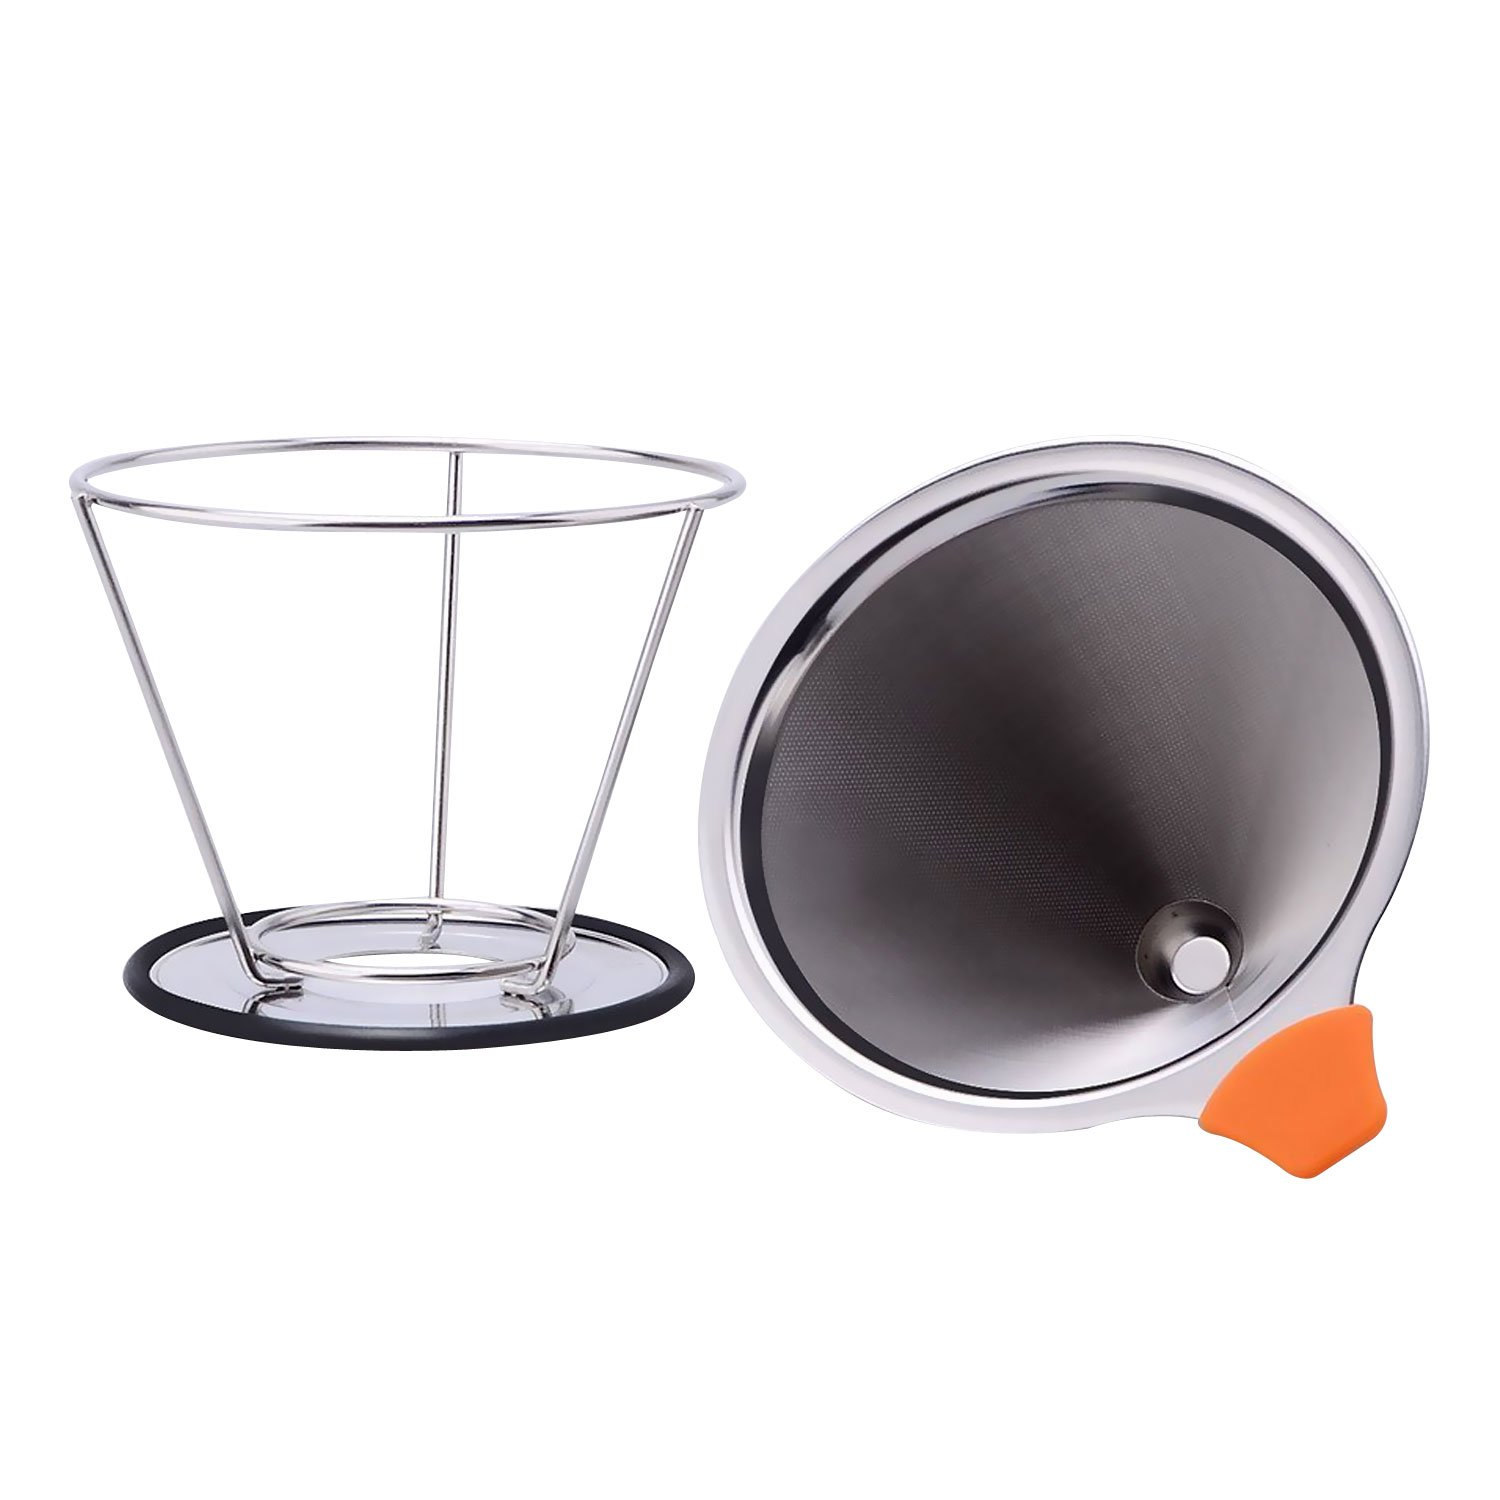 Firlar Pour Over Coffee Filter Paperless & Reusable Permanent Double Layer with Separate Stand for 1-4 cups